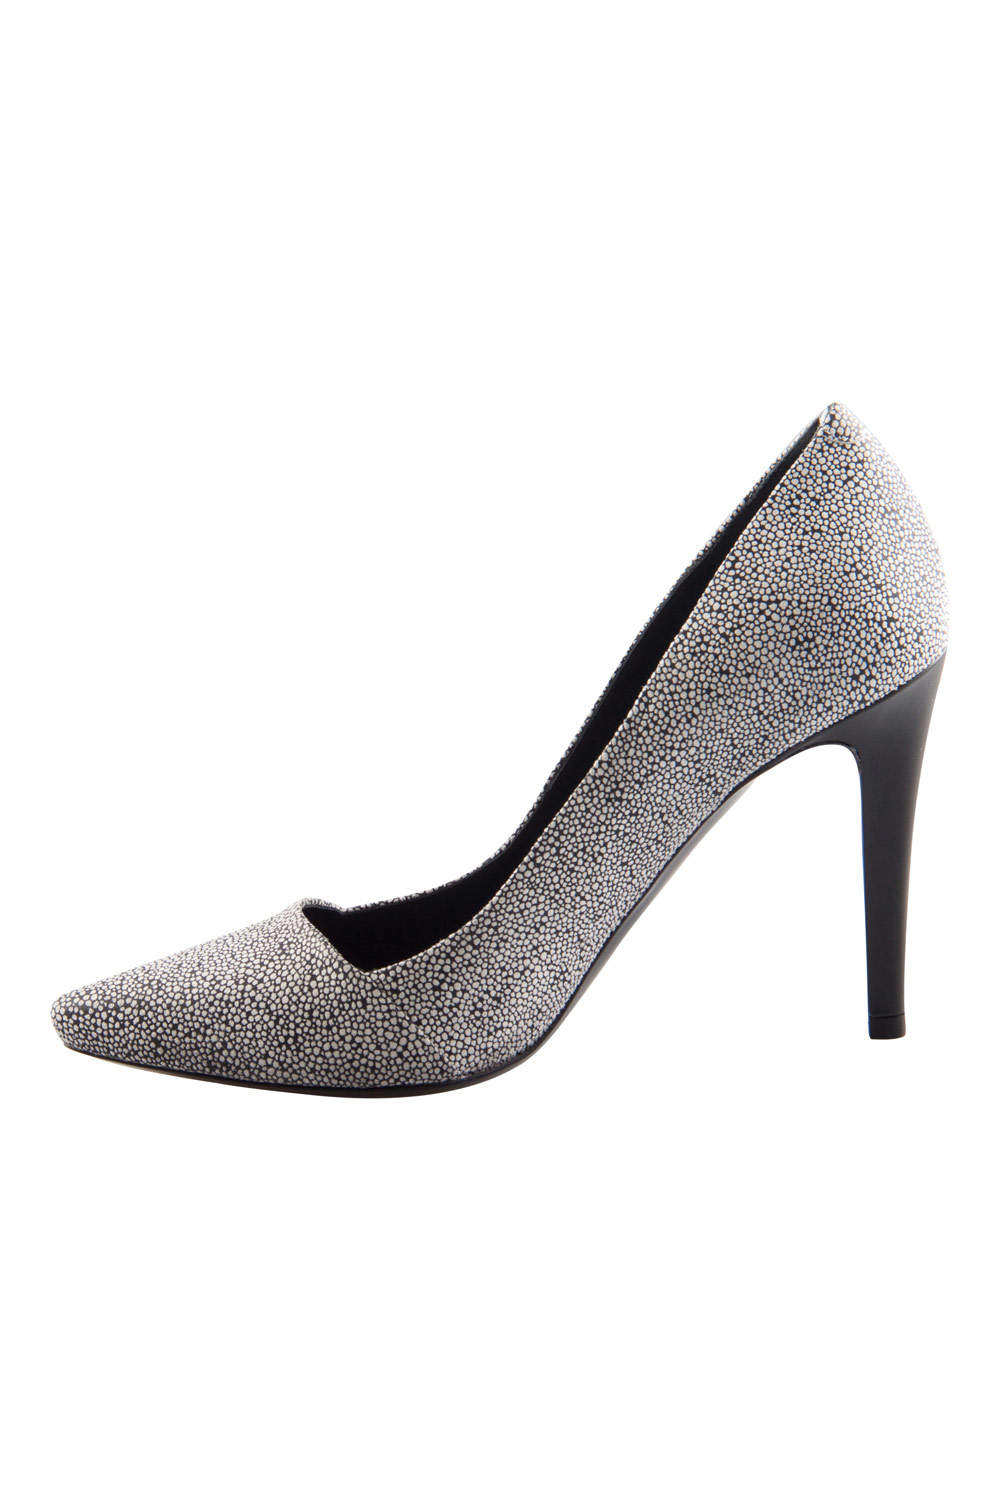 Proenza Schouler Two Tone Textured Suede Dragonfly Pumps Size 38